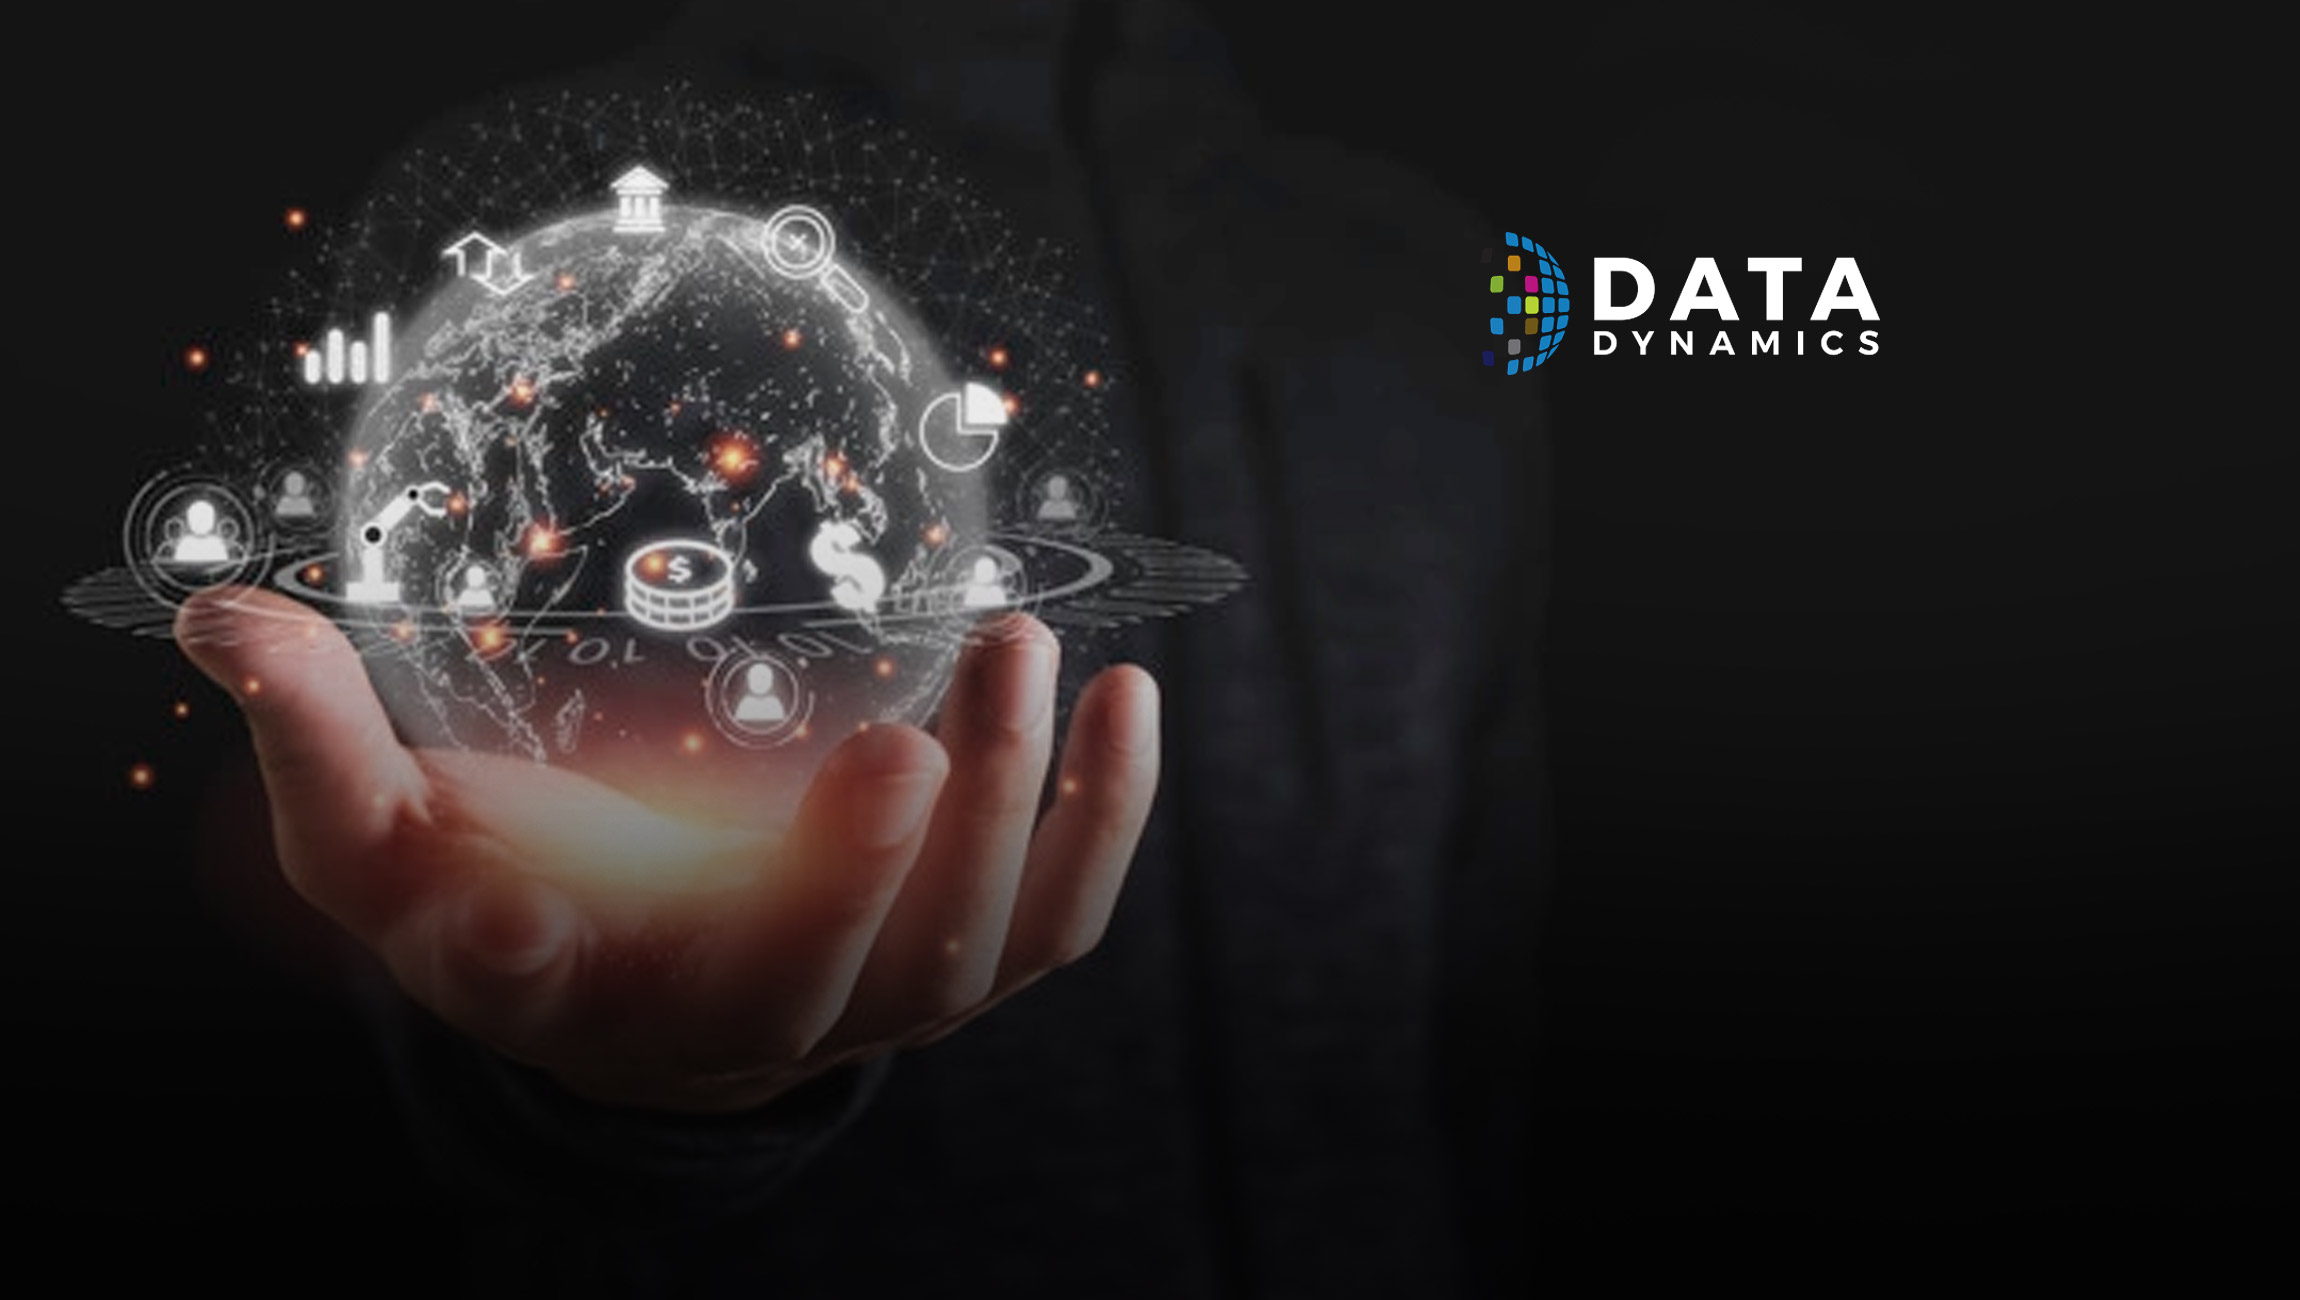 Data-Dynamics-Delivers-Data-Mobility-for-the-Multi-Cloud-with-the-latest-Release-of-StorageX-8.4